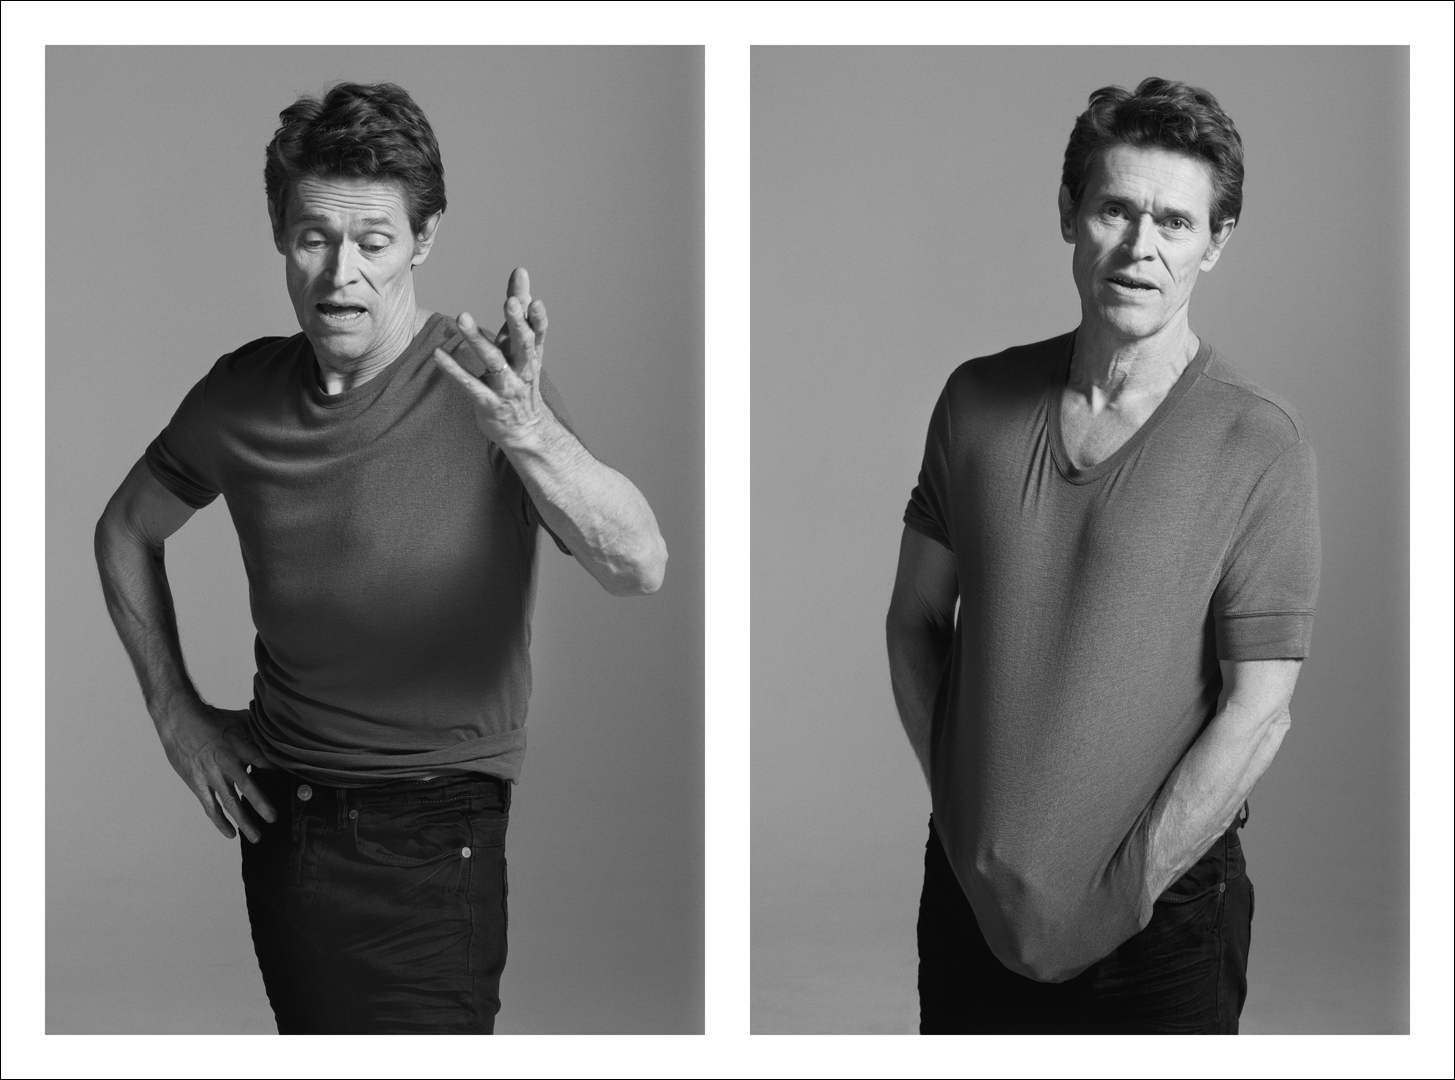 31_TIM_BARBER_WILLEM_DAFOE.jpg